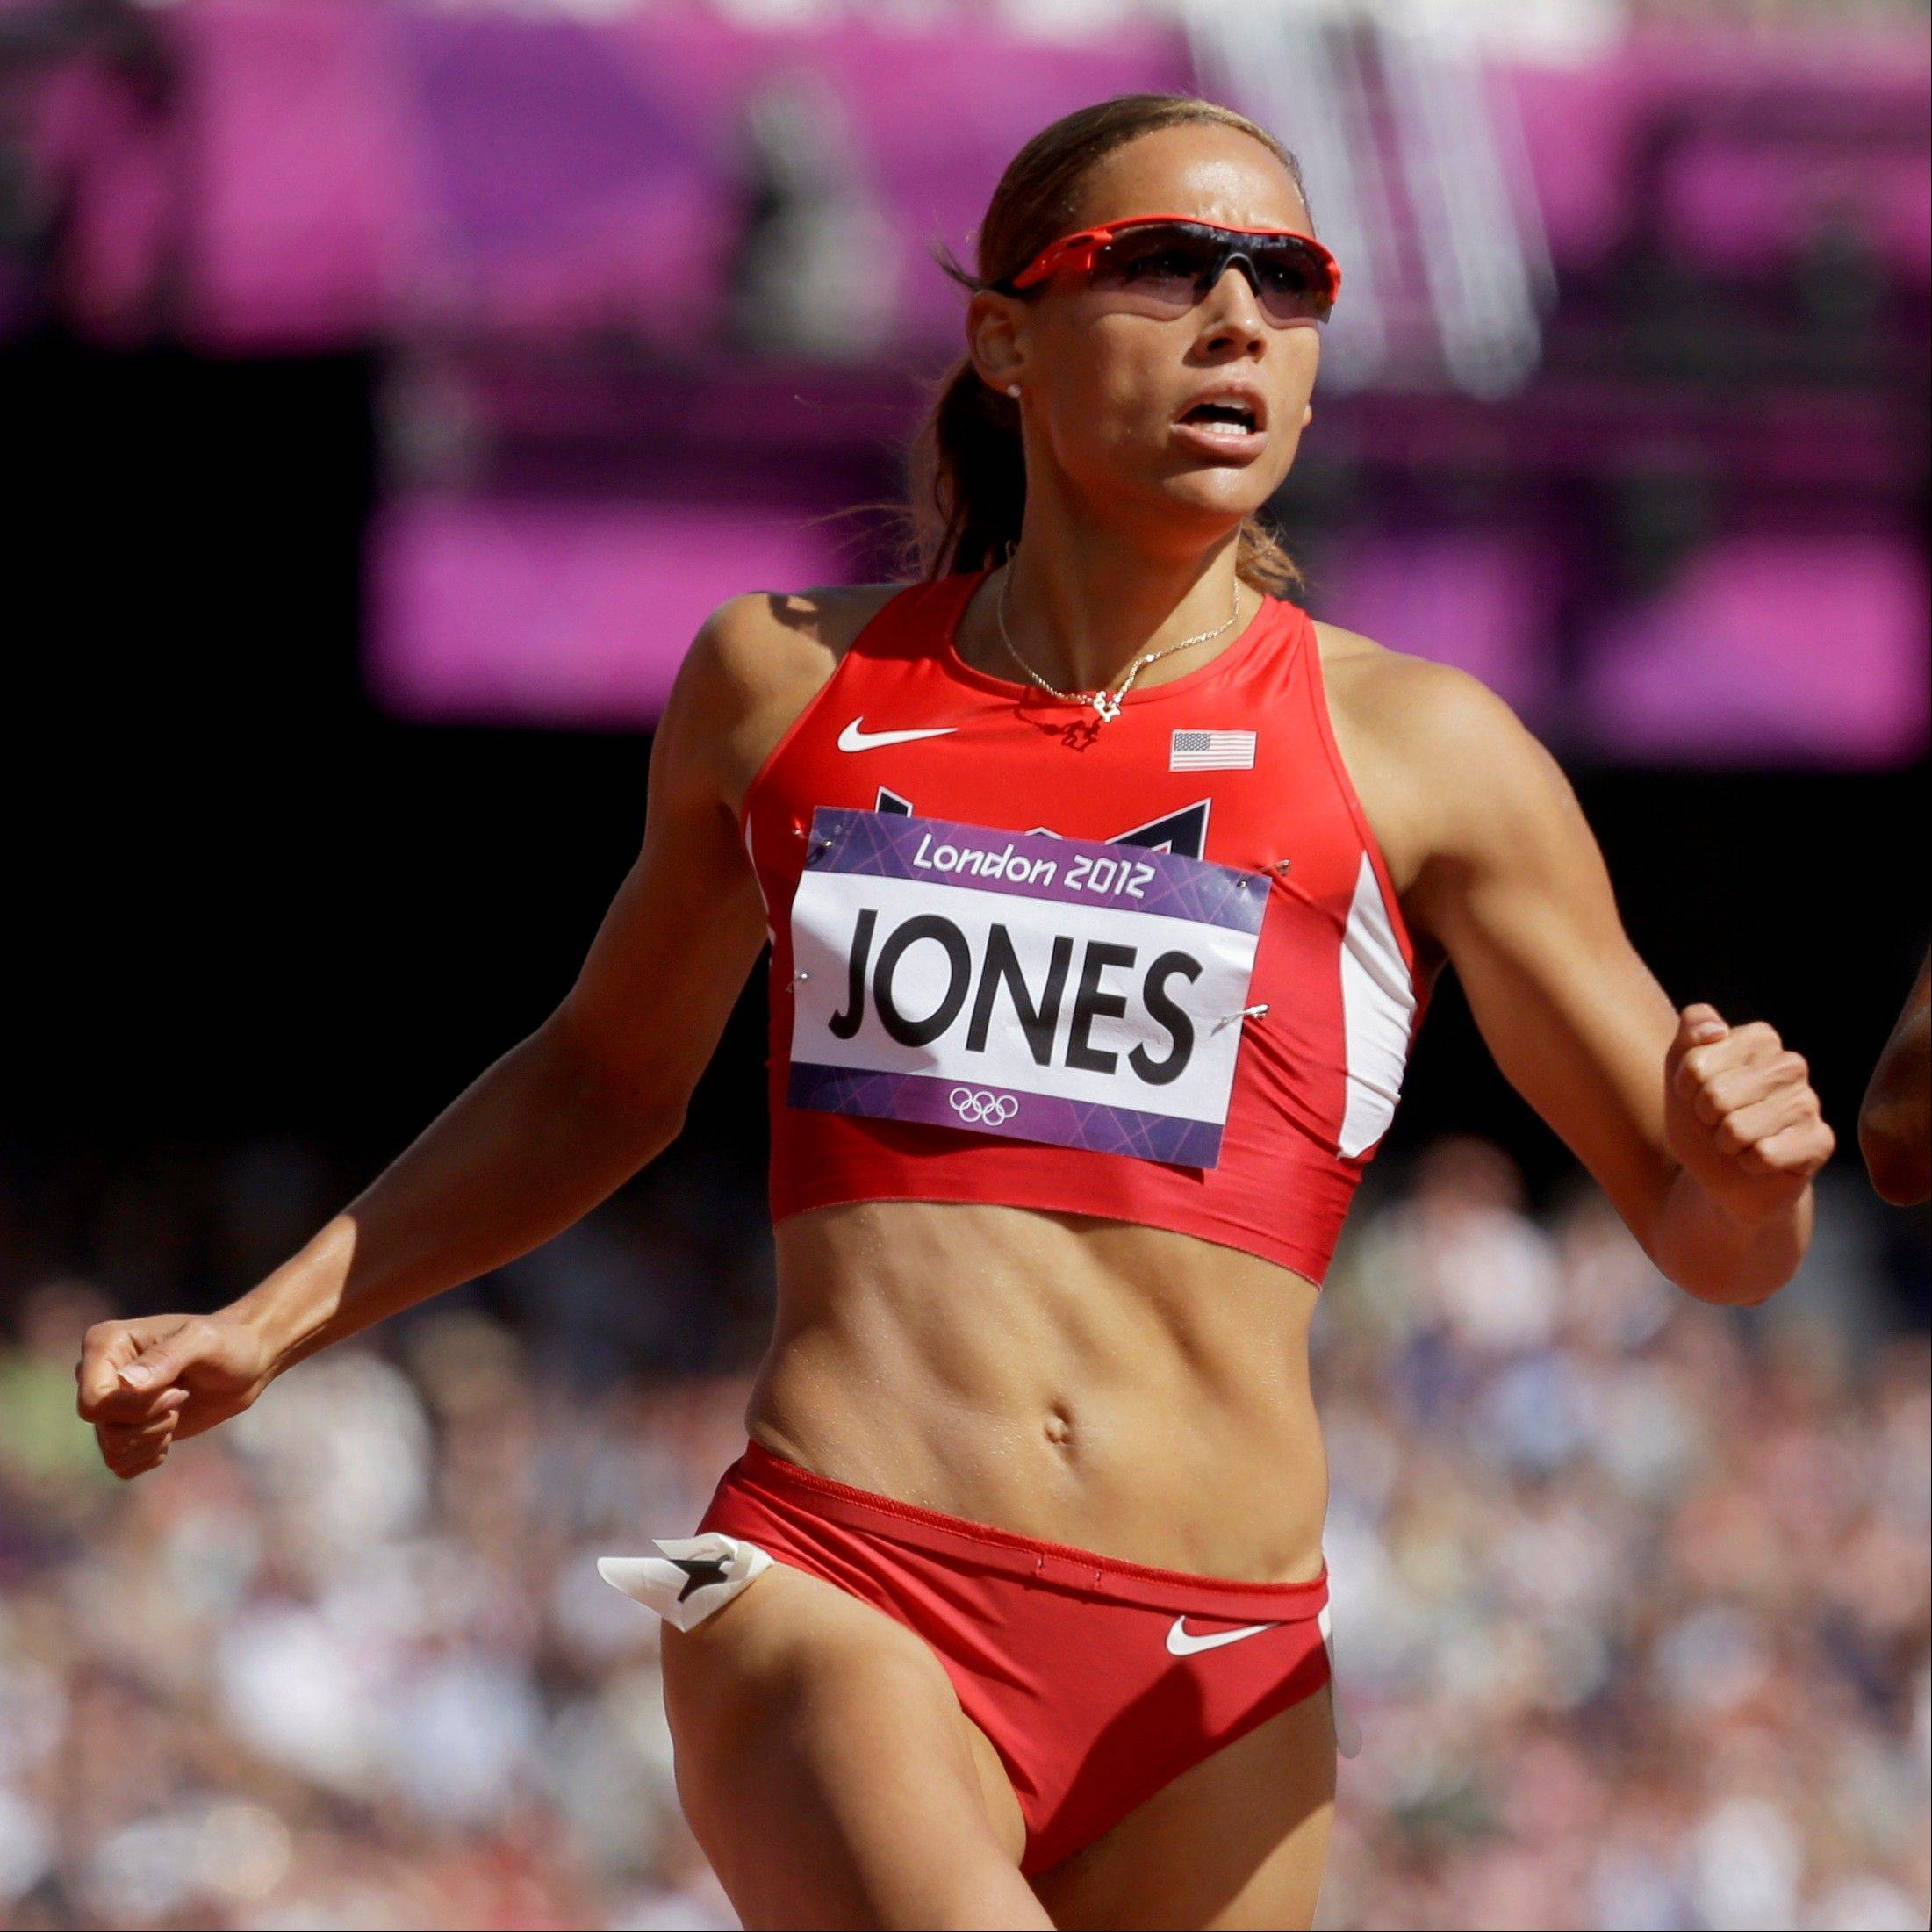 This Aug. 6, 2012 file photo shows hurdler Lolo Jones competing in a women's 100-meter hurdles heat at at the 2012 Summer Olympics in London. Jones trash-talked about head injuries to former Rutgers football player Eric LeGrand, Tuesday, Oct. 2, 2012, after he jokingly challenged her to a race on Twitter. Jones didn't know the defensive tackle was paralyzed in a game.